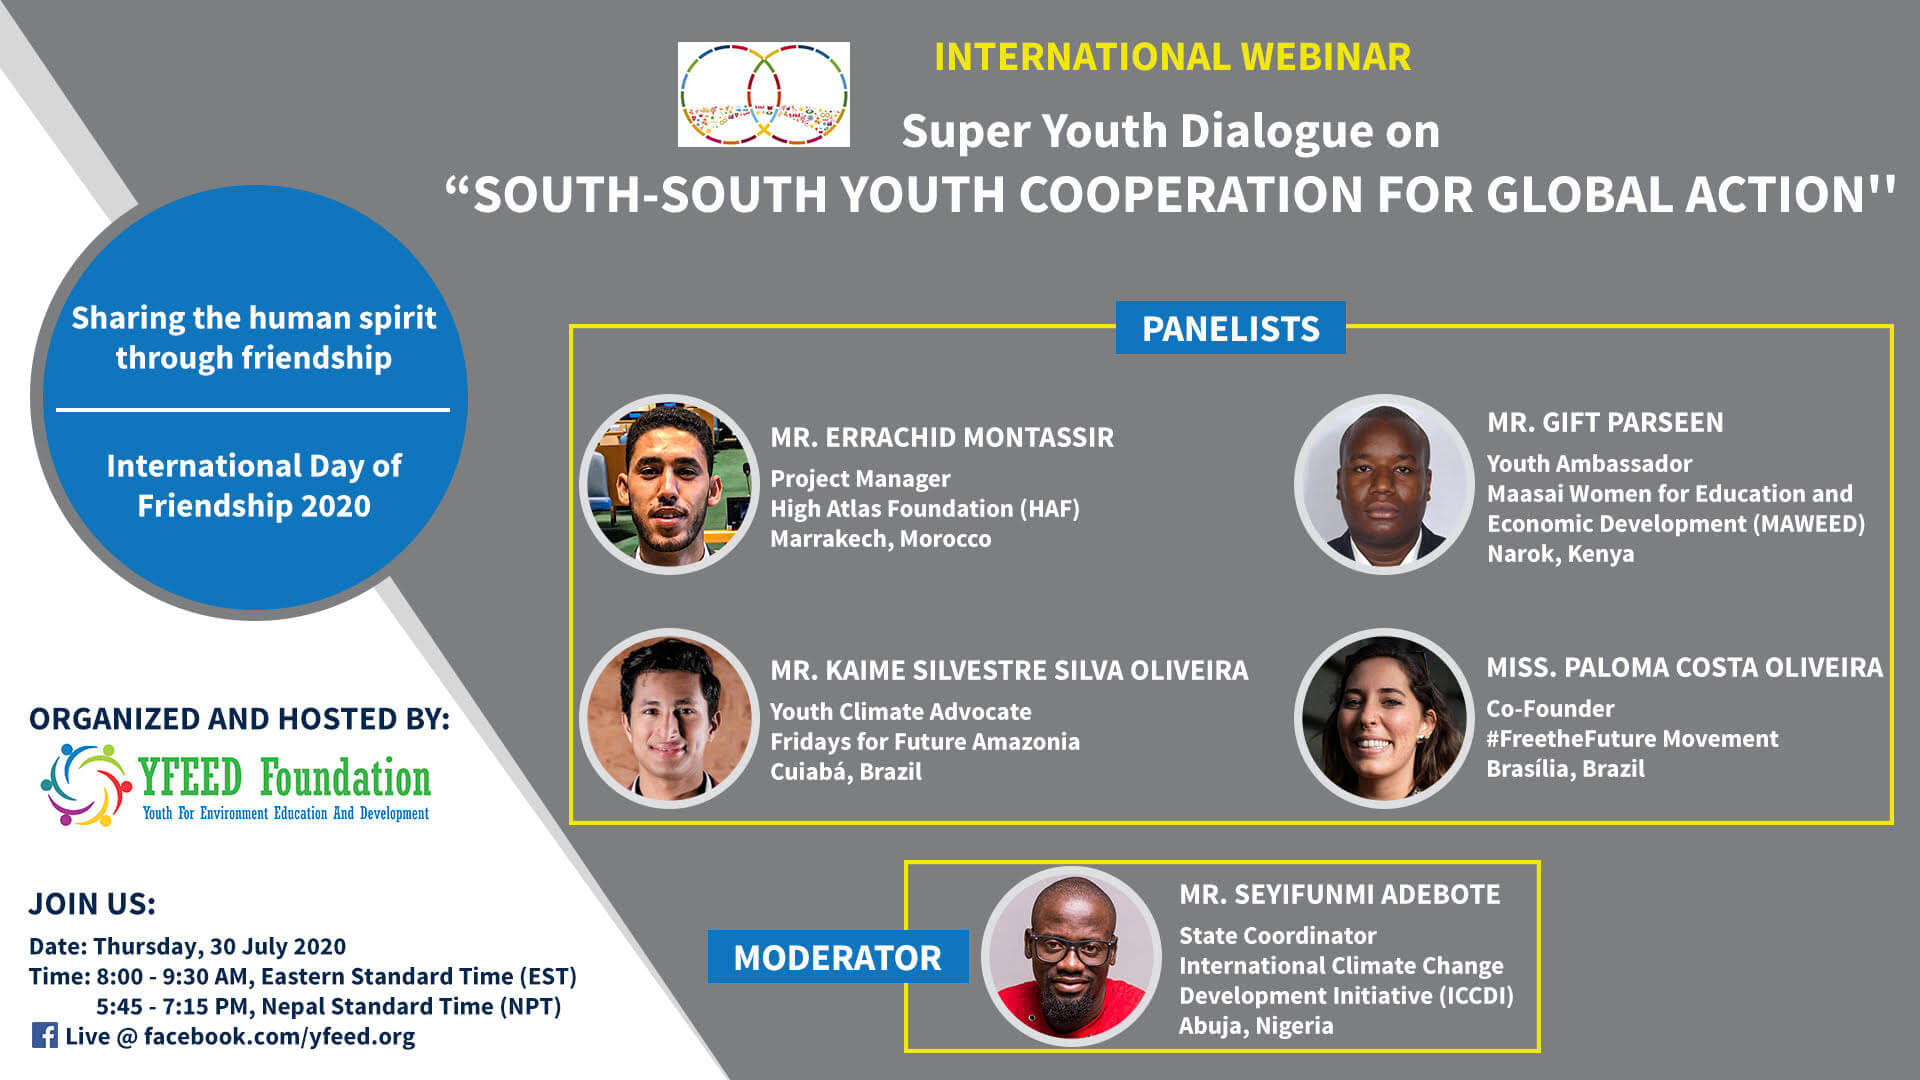 SOUTH-SOUTH YOUTH COOPERATION